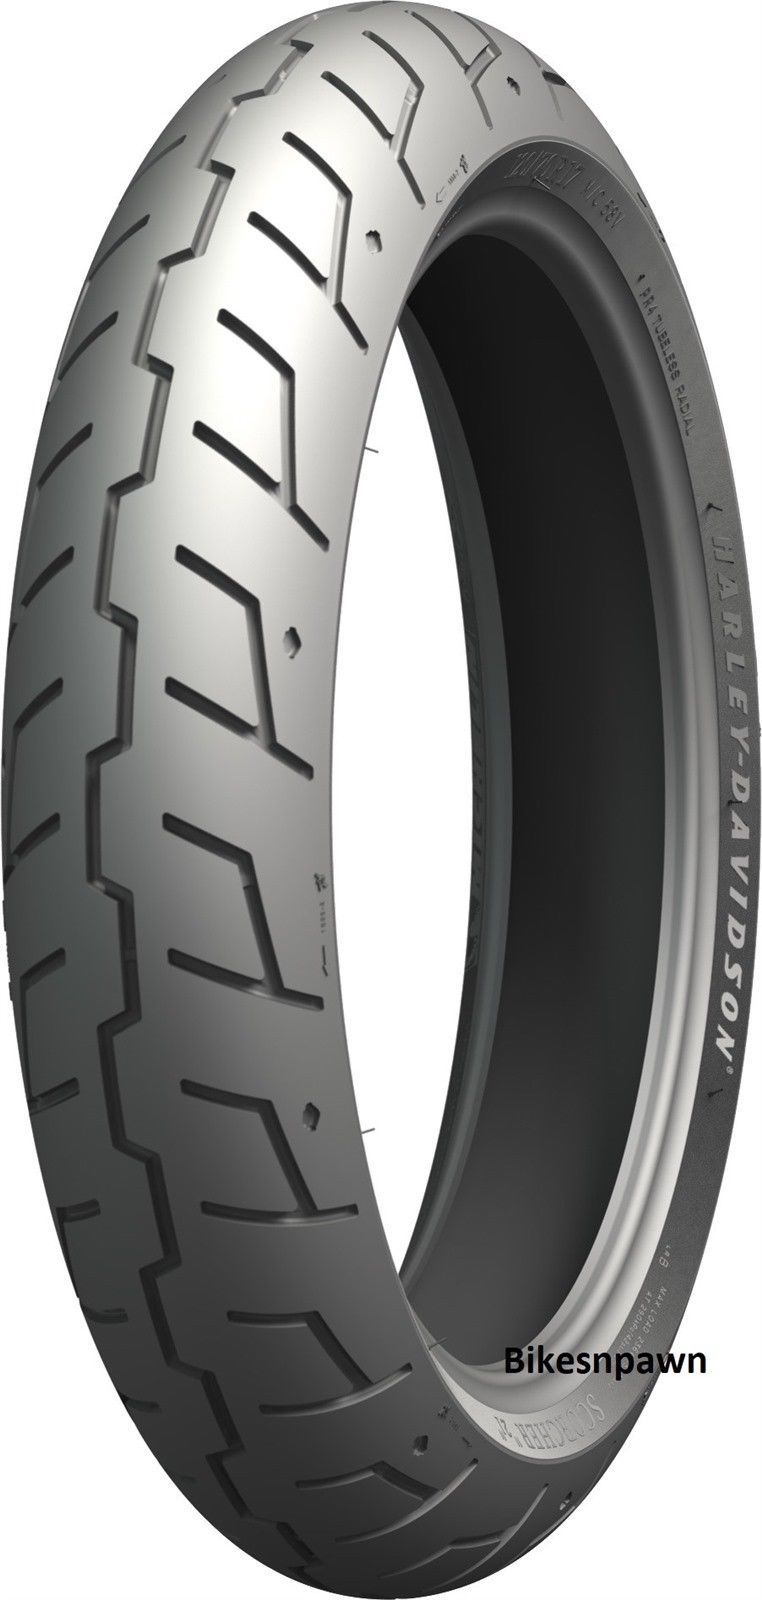 Radial 120/70R17 Michelin Scorcher 21 Harley Davidson Front Tire 56V Motorcycle